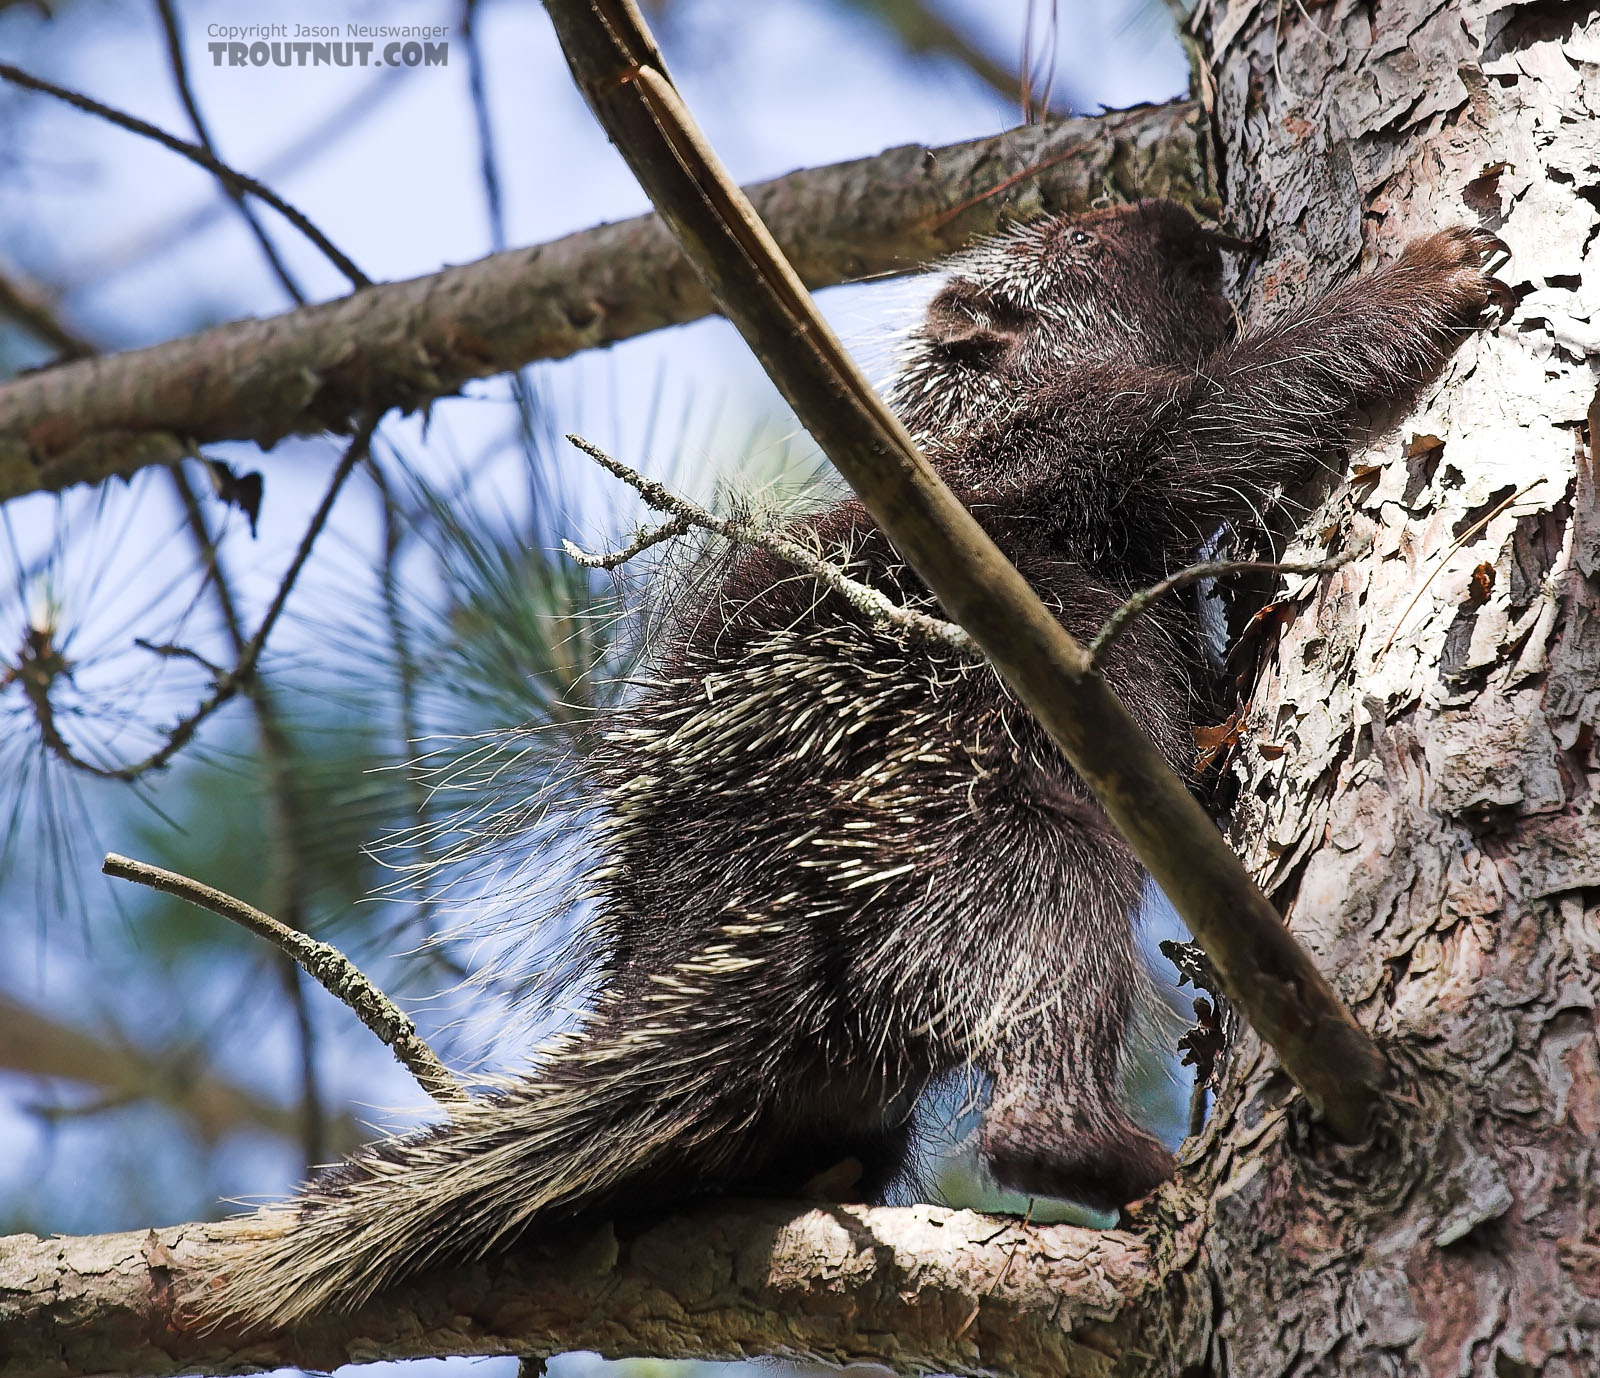 A porcupine climbs a pine tree near a trout stream. From the Namekagon River in Wisconsin.